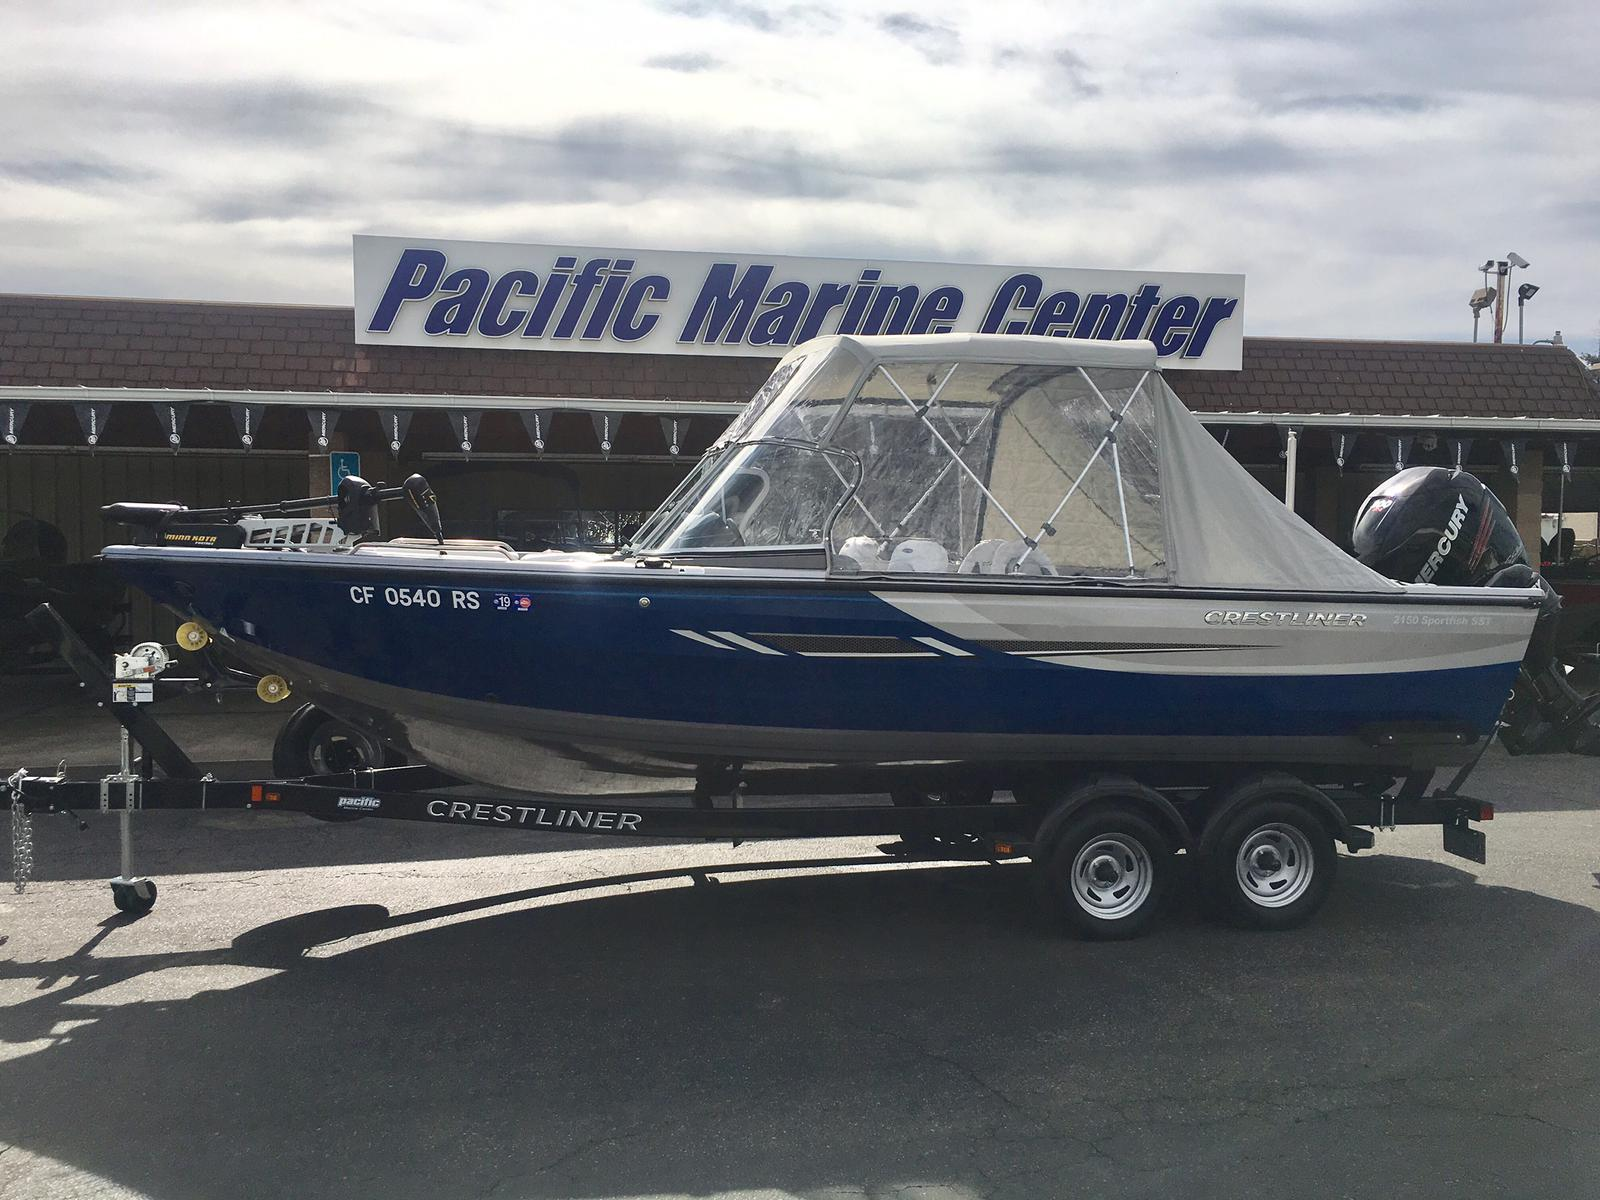 2014 crestliner 2150 sportfish sst factory engine warranty til march rh pacificmarinecenter com Wiring Harness Diagram Ford Wiring Harness Kits